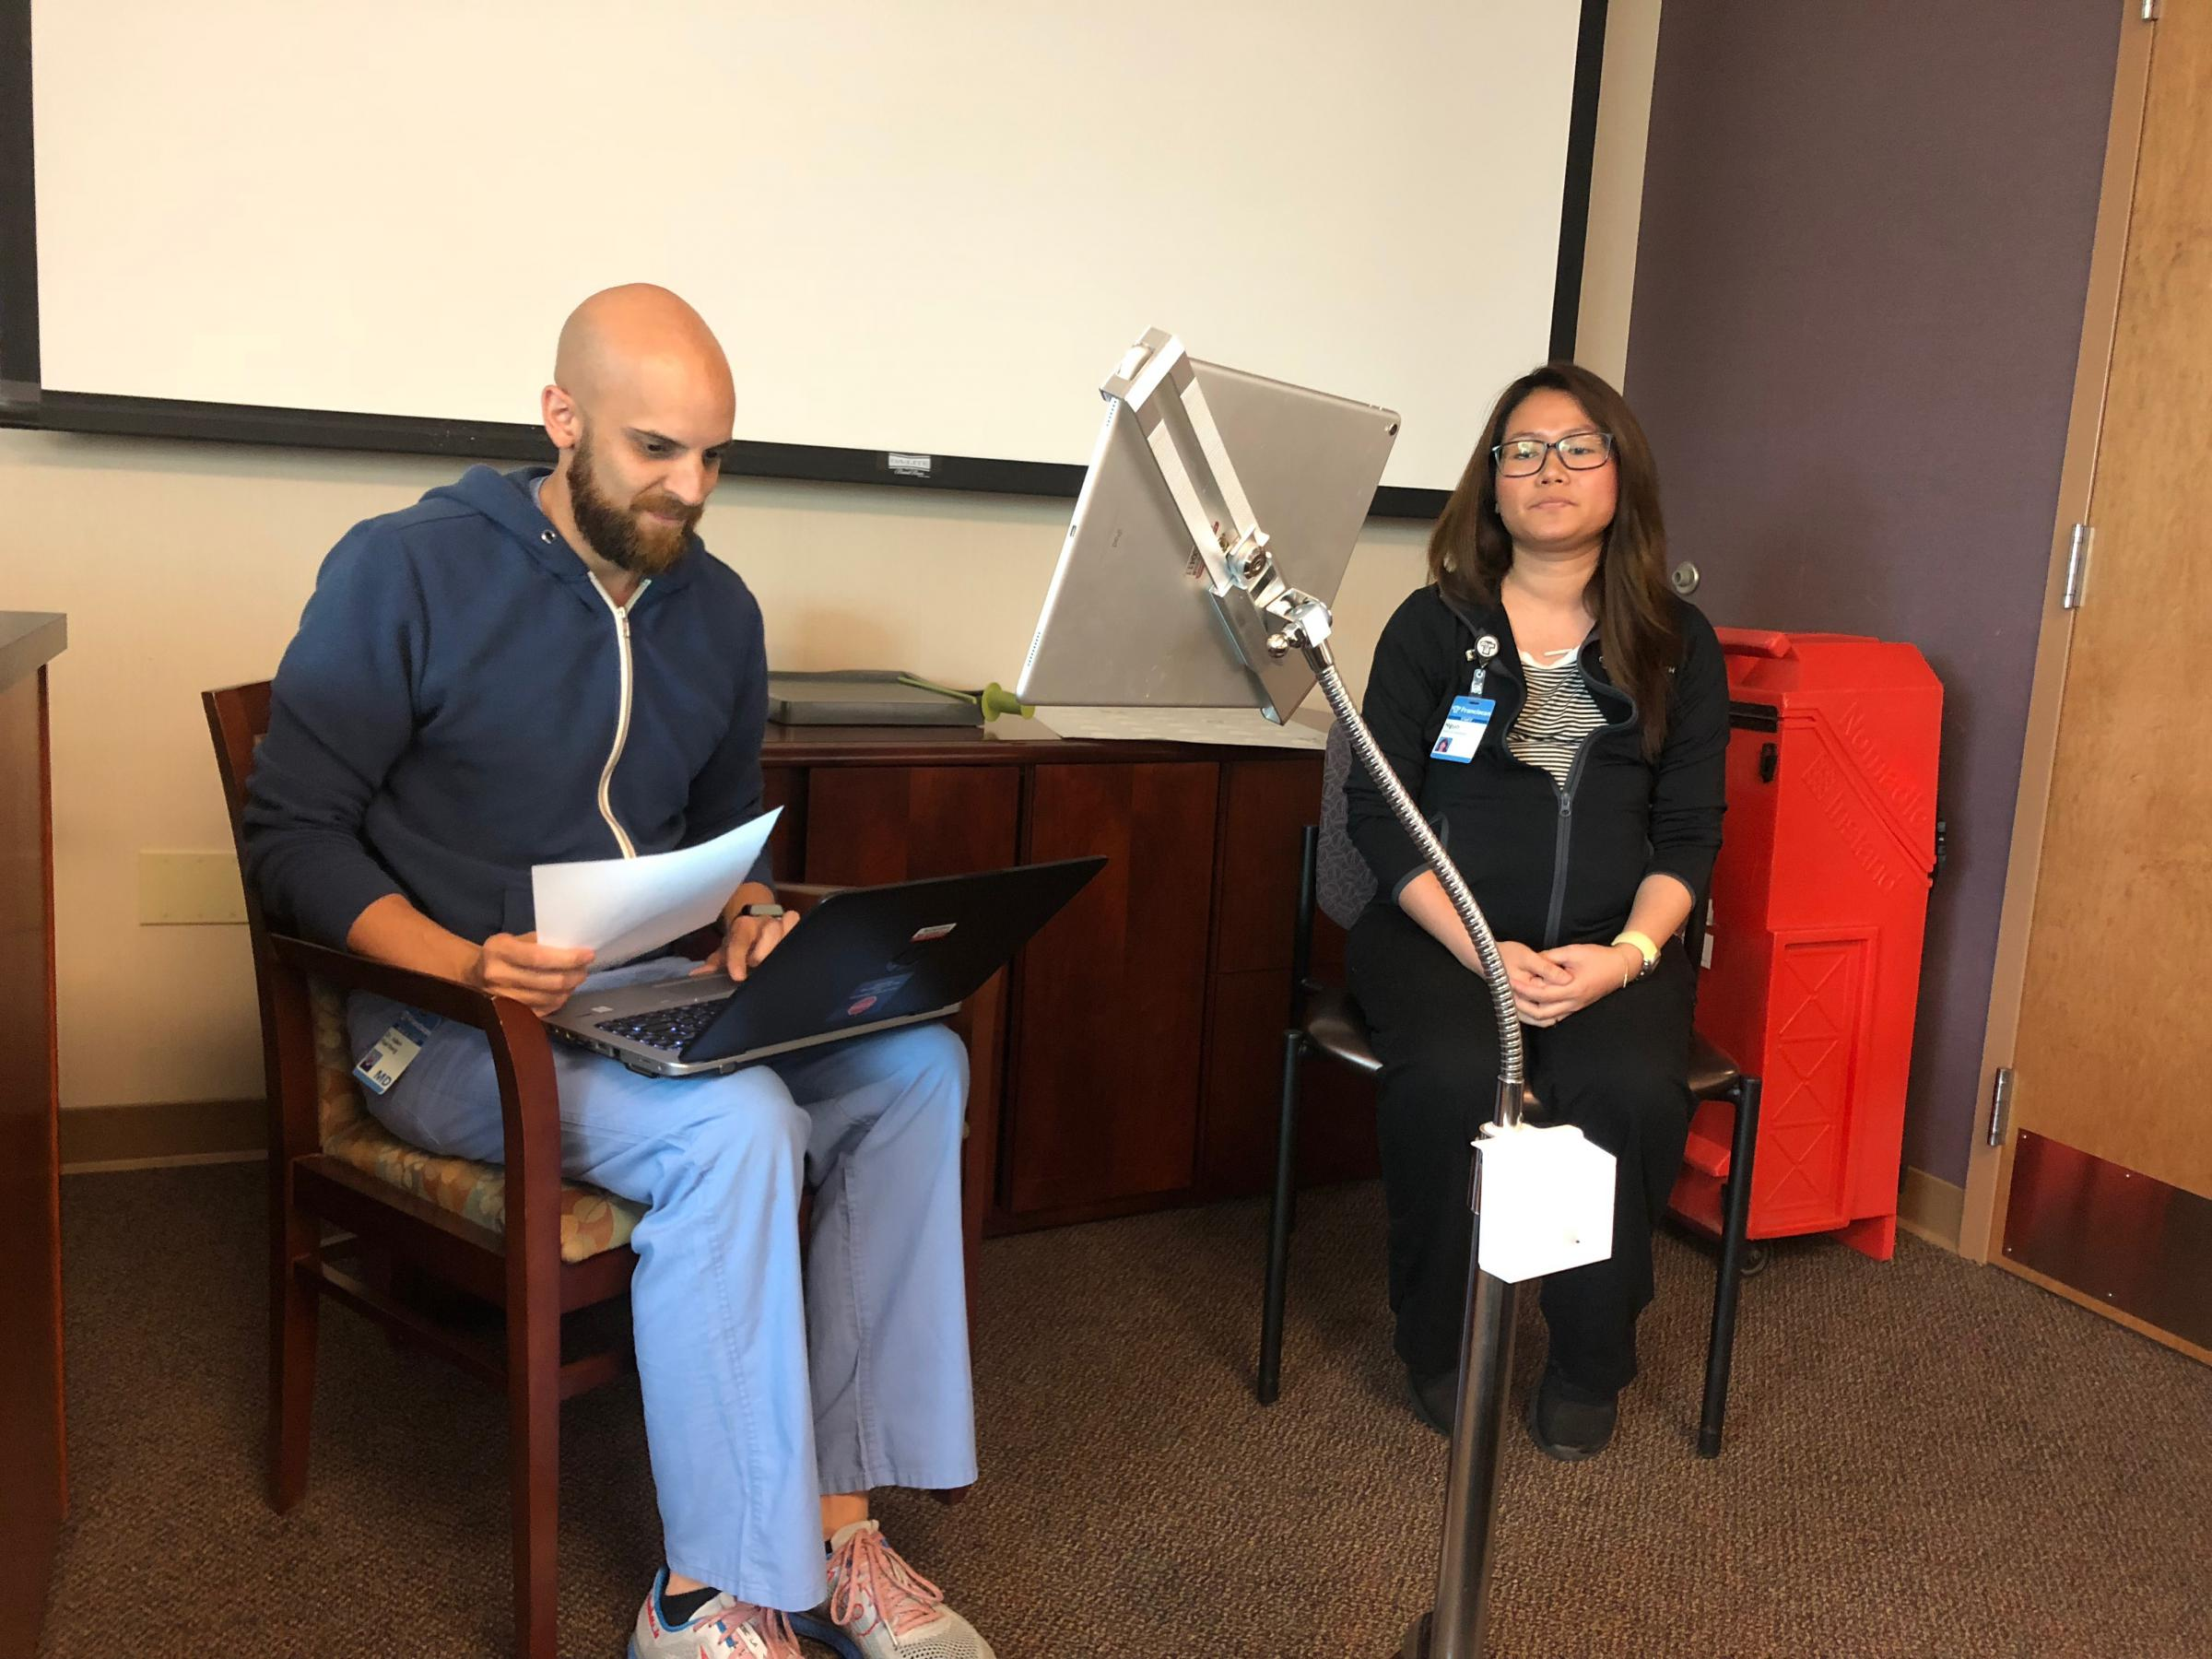 Caption: Adam Paarlberg (left) and medical assistant Ngun Tial (right) demonstrate how the live interpreter Martti system works., Credit: CARTER BARRETT/SIDE EFFECTS PUBLIC MEDIA.